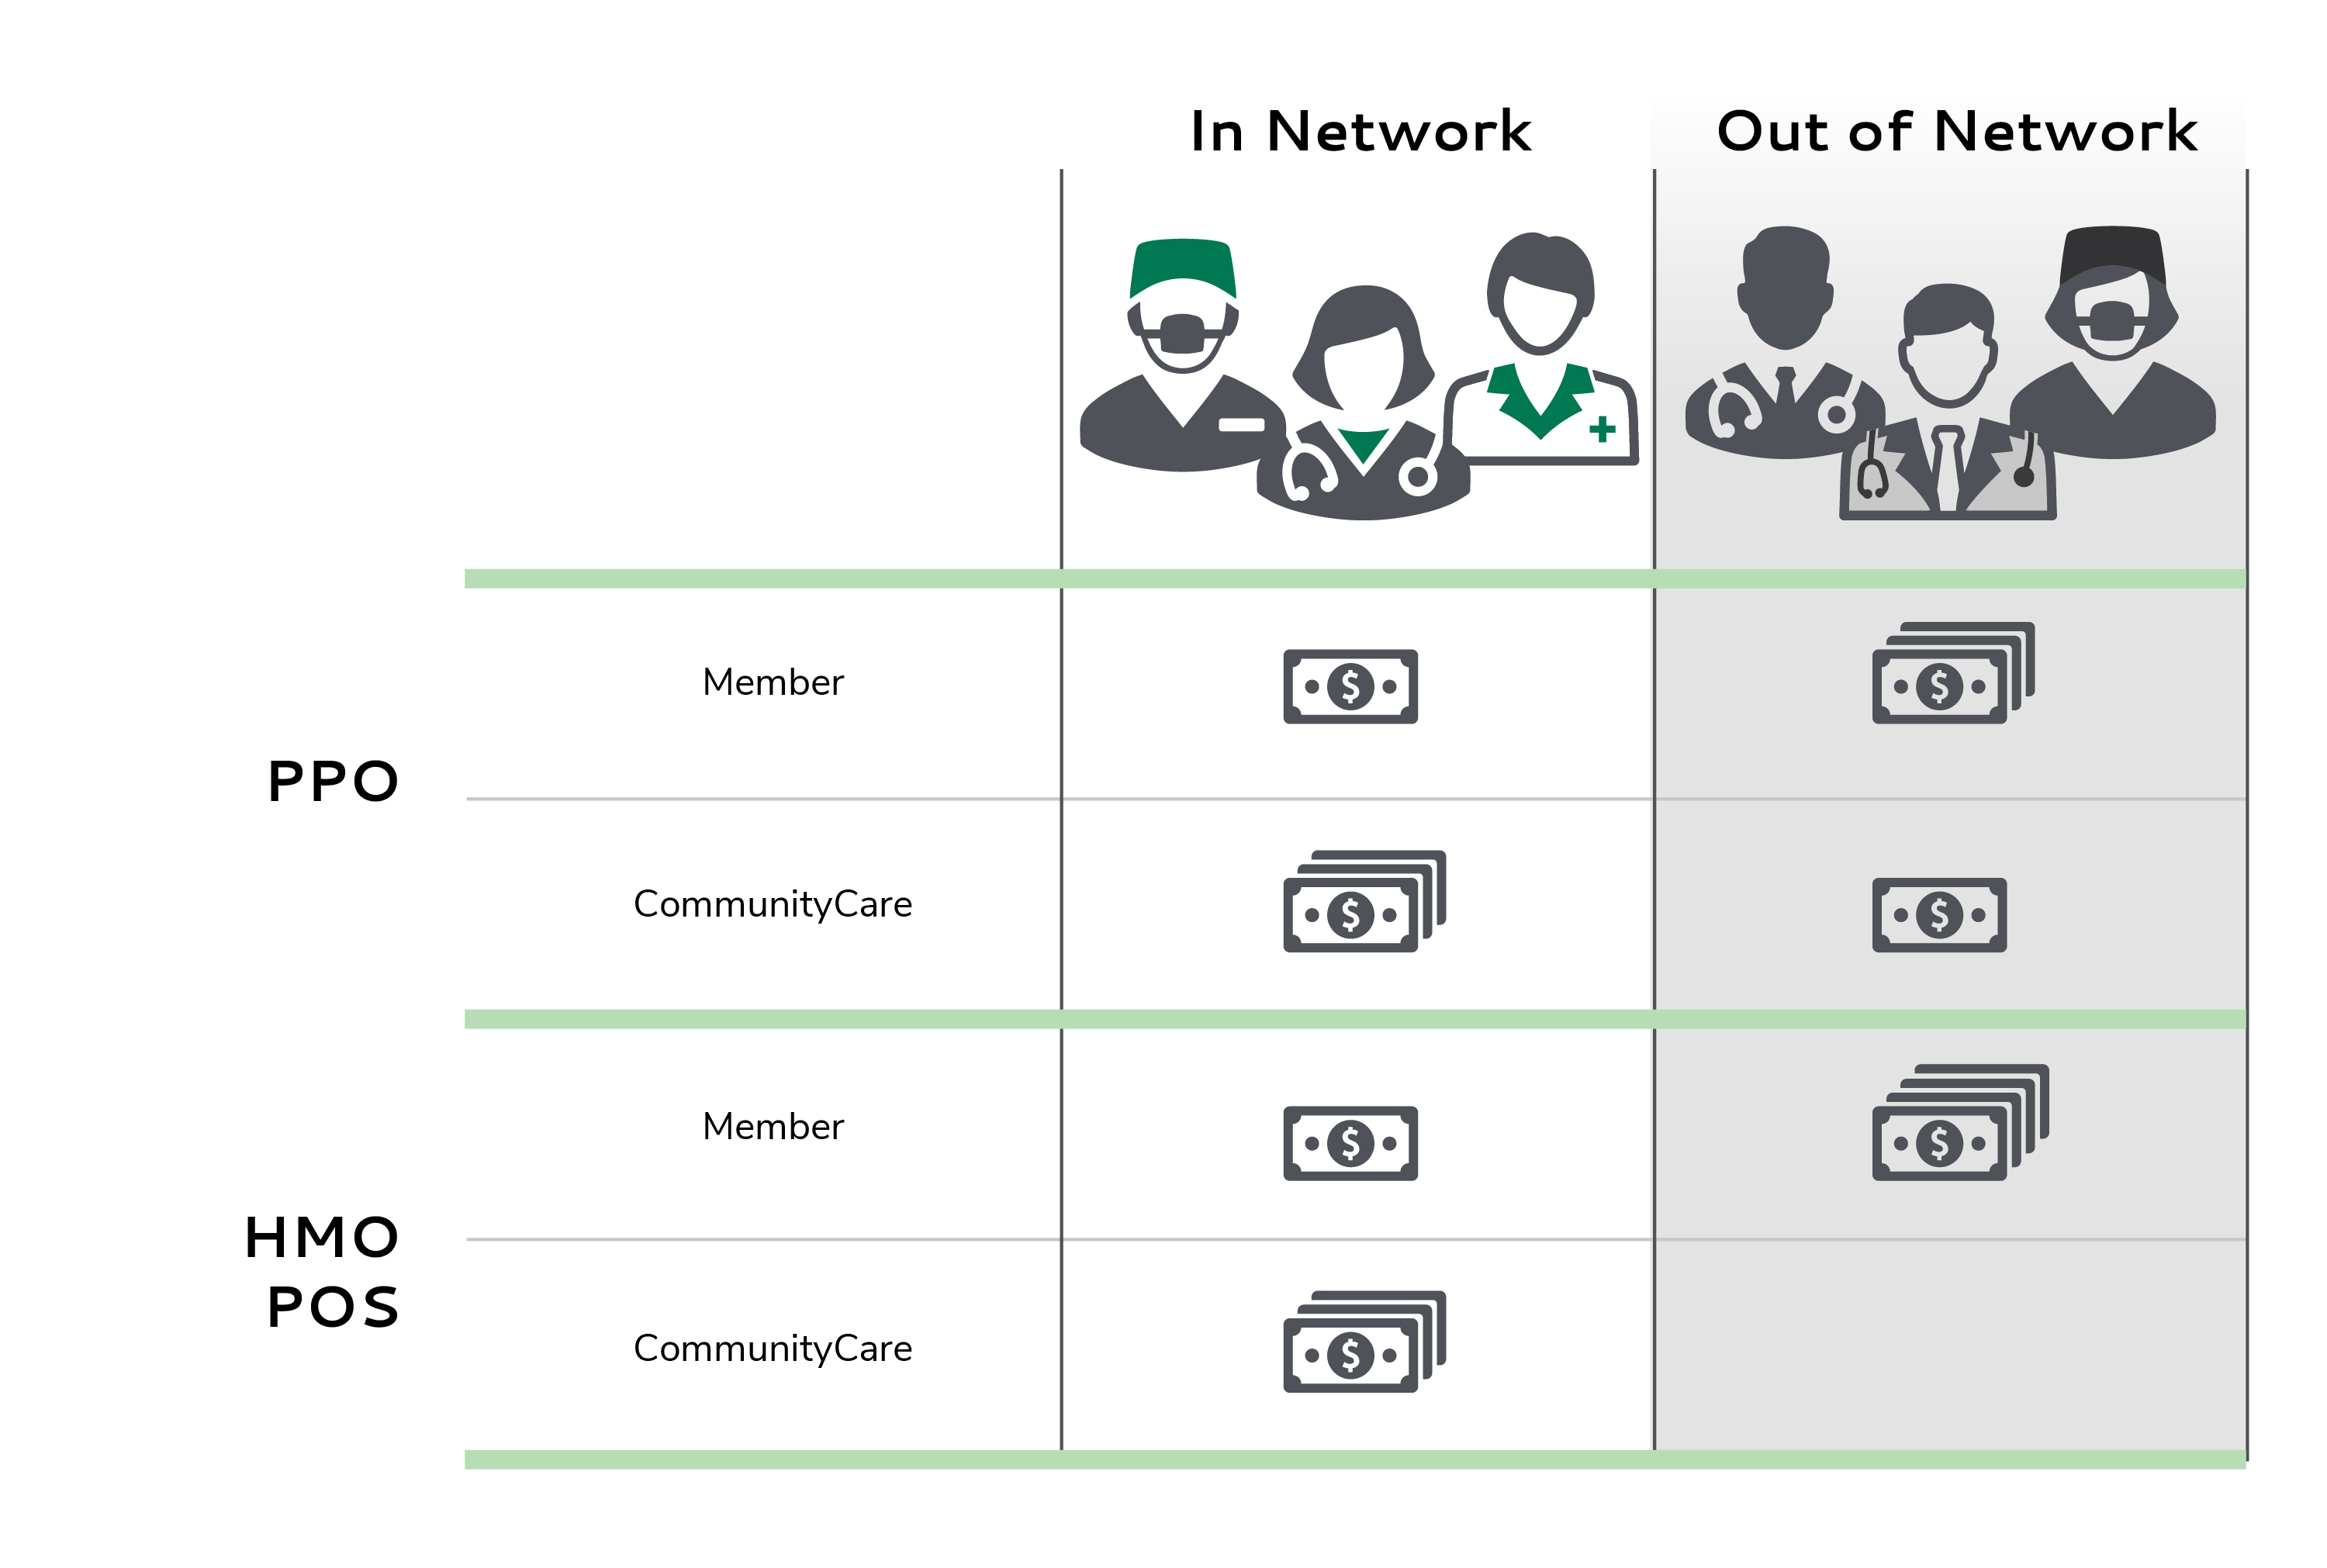 In-Network - Out-of-Network illustration